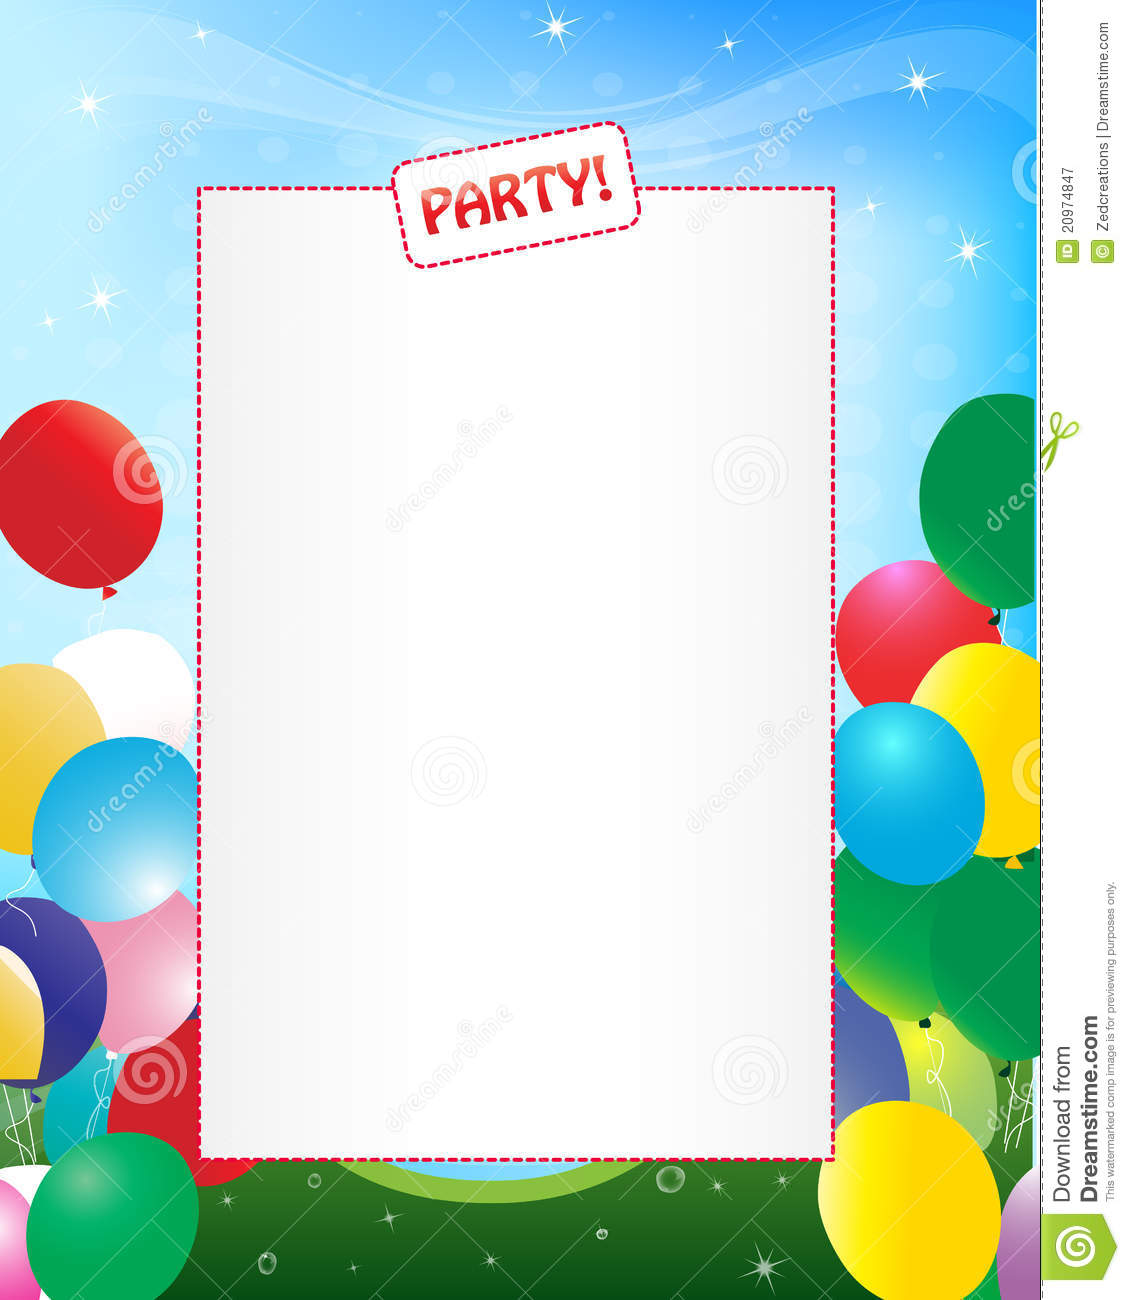 Party invitation background stock vector illustration of party invitation background filmwisefo